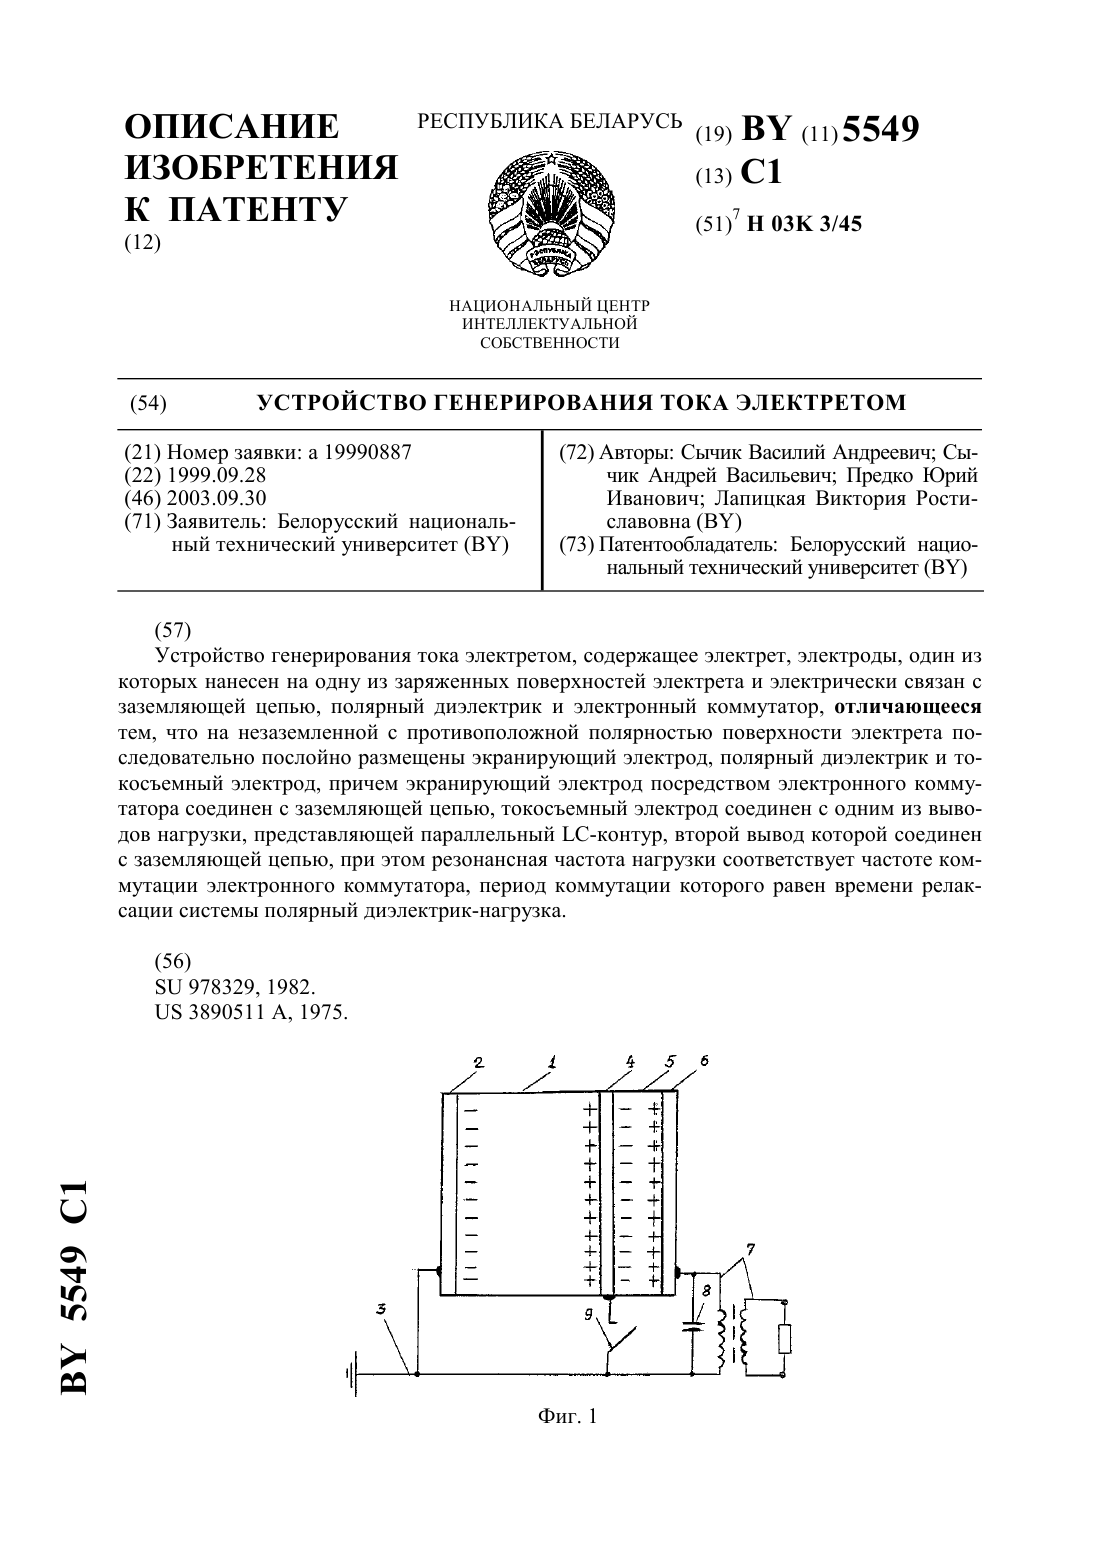 http://bypatents.com/patents/5549-ustrojjstvo-generirovaniya-toka-elektretom-1.png